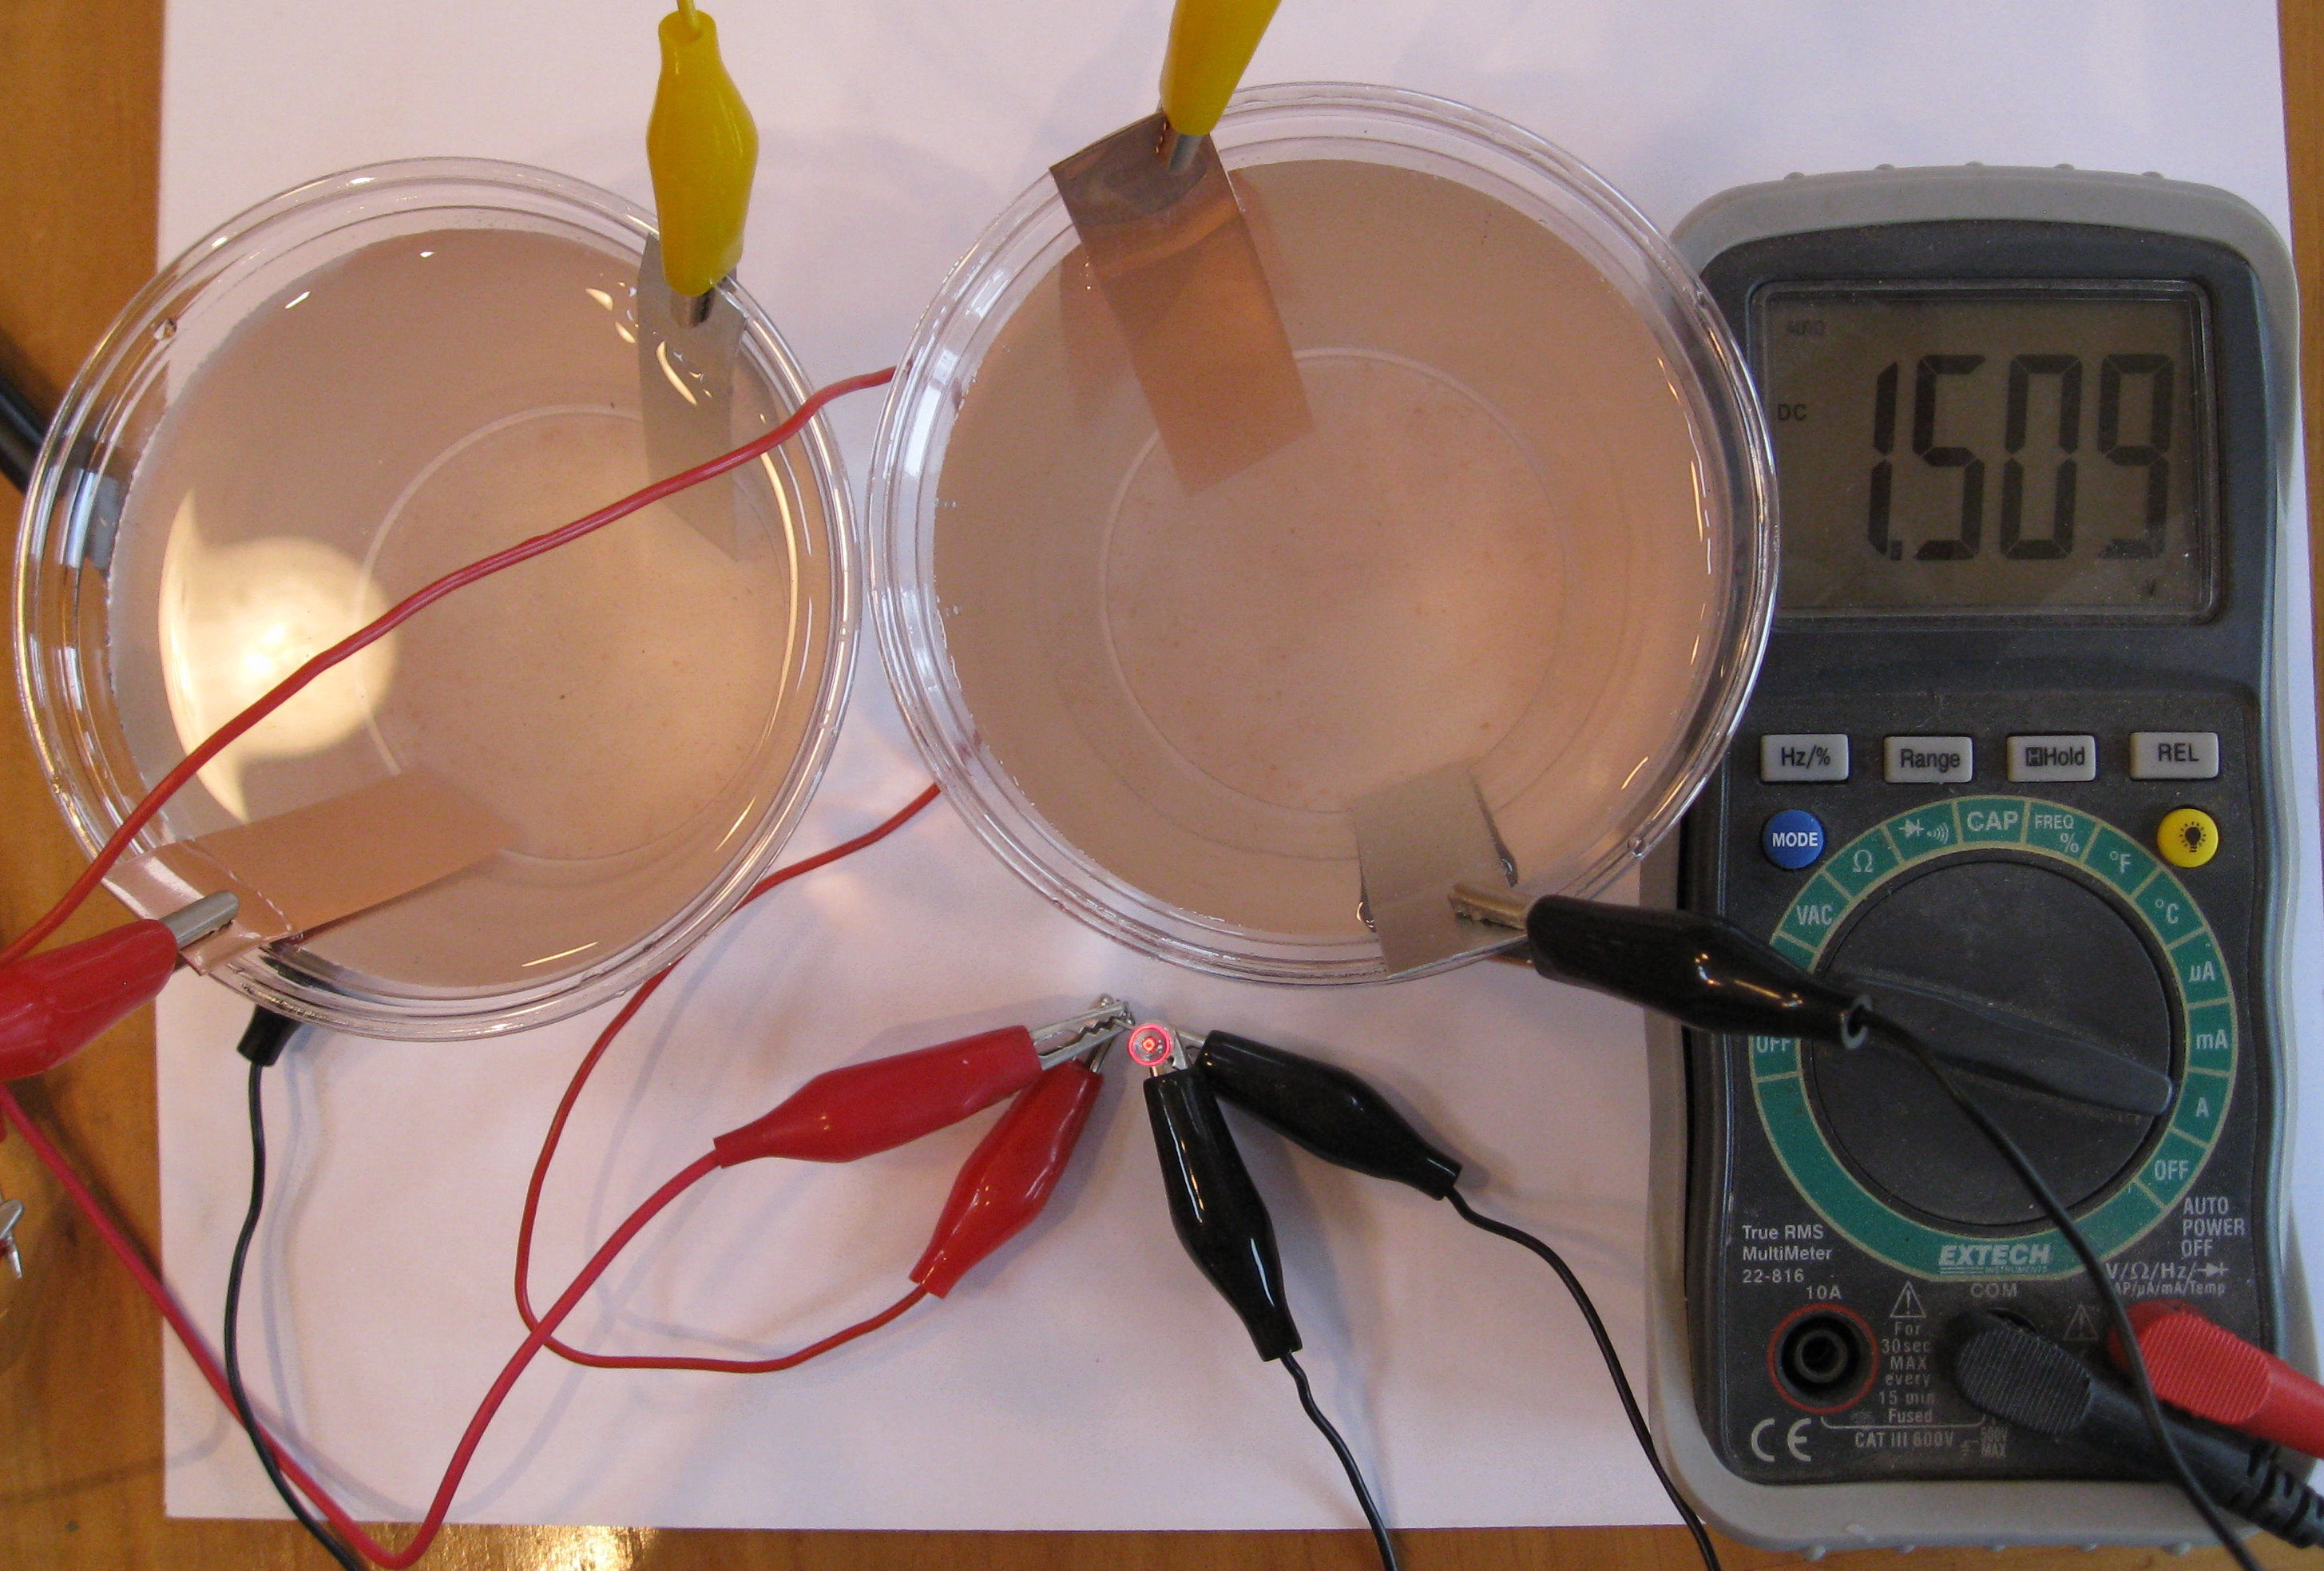 Chapter 3 Electrochemistry Make Homemade Batteries In Your Kitchen Wiring Two Identical Series Will Double The Voltage But